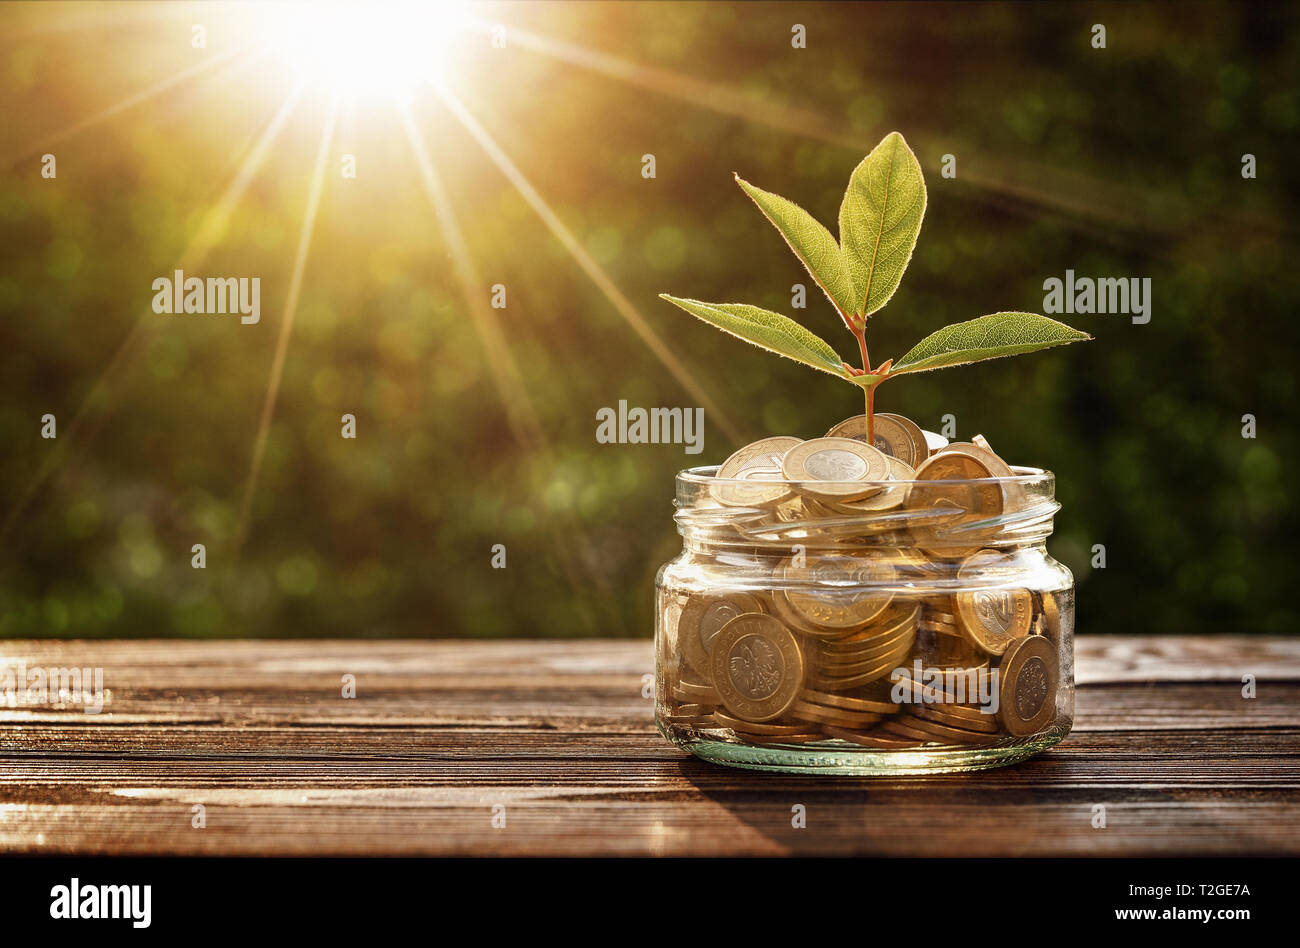 Small plant growing out from jar of saving coins with copy space Stock Photo